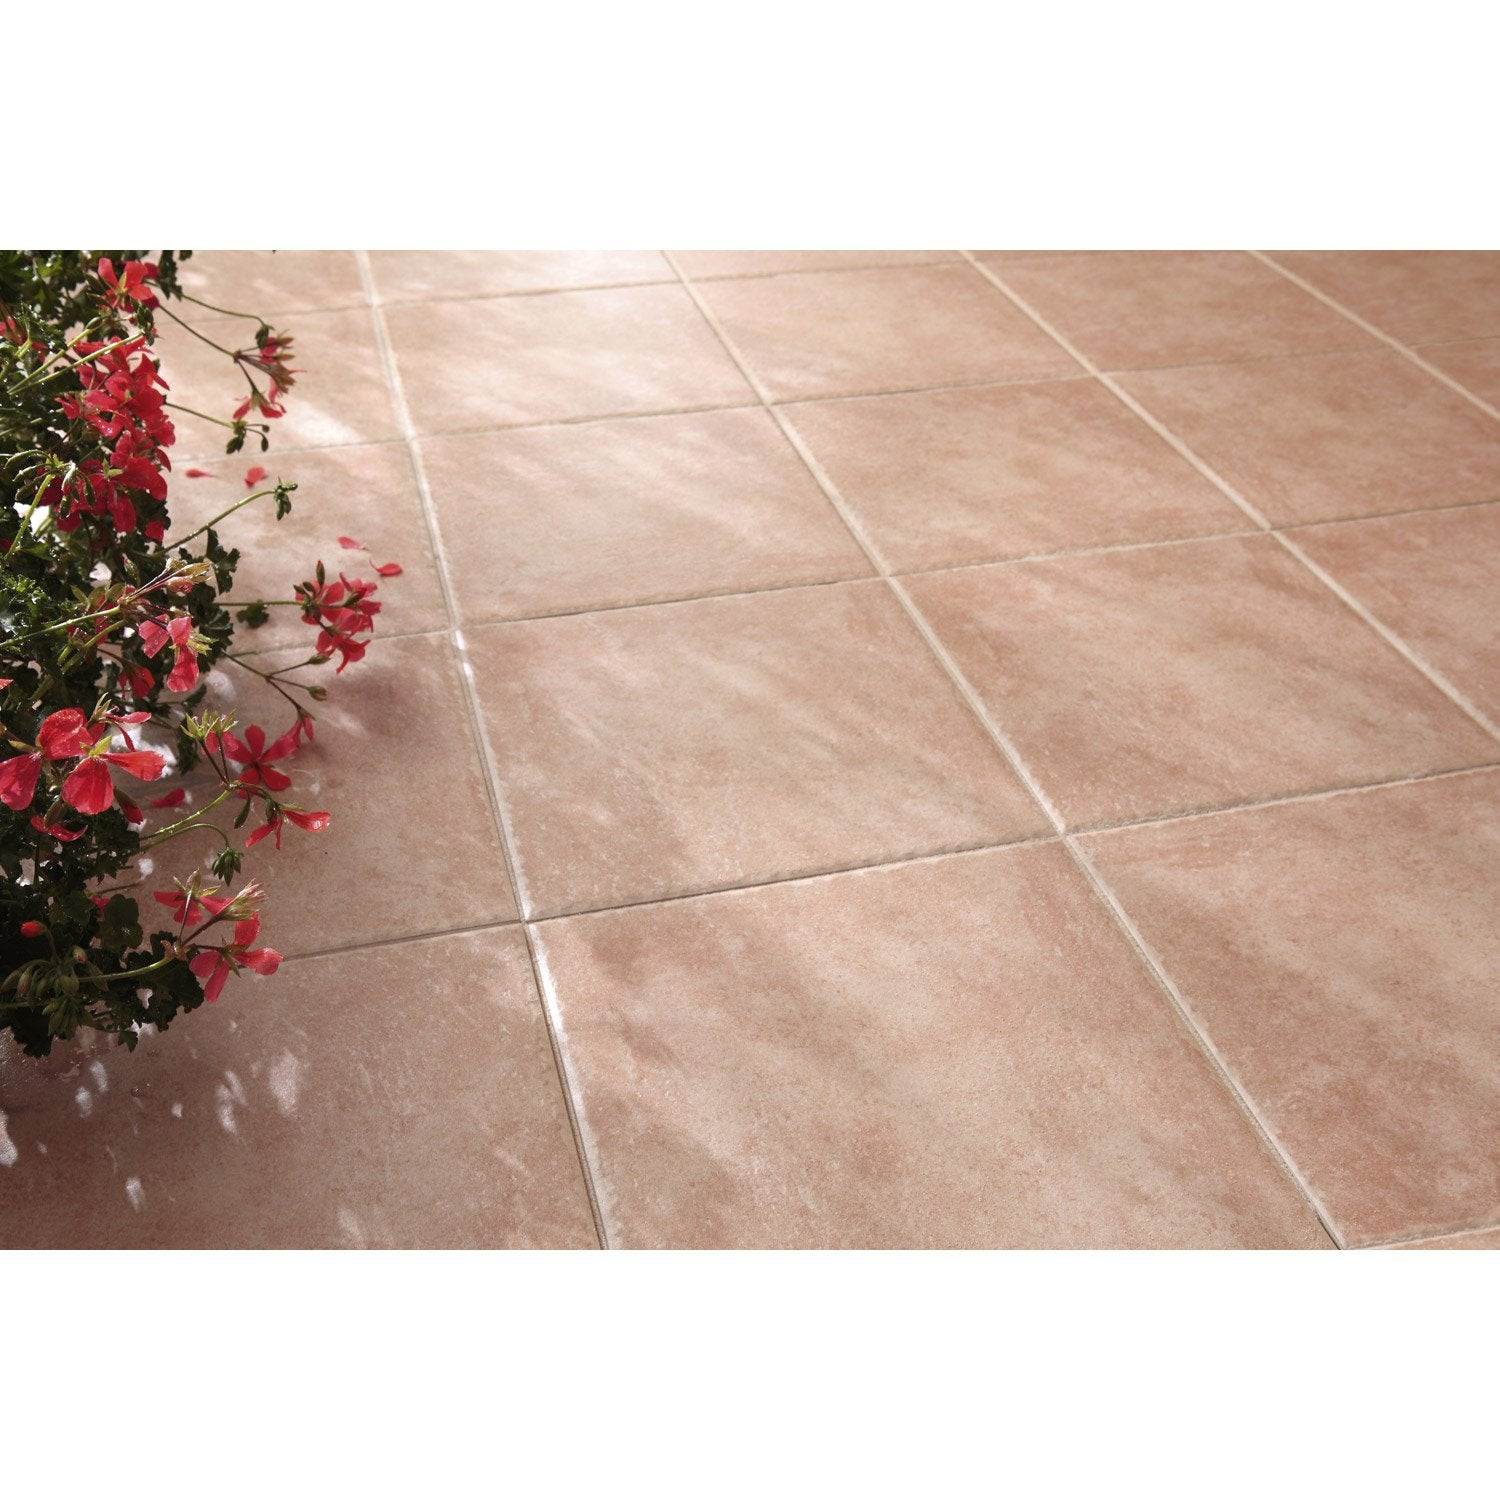 Carrelage sol rose effet pierre michigan x cm for Carrelage italien